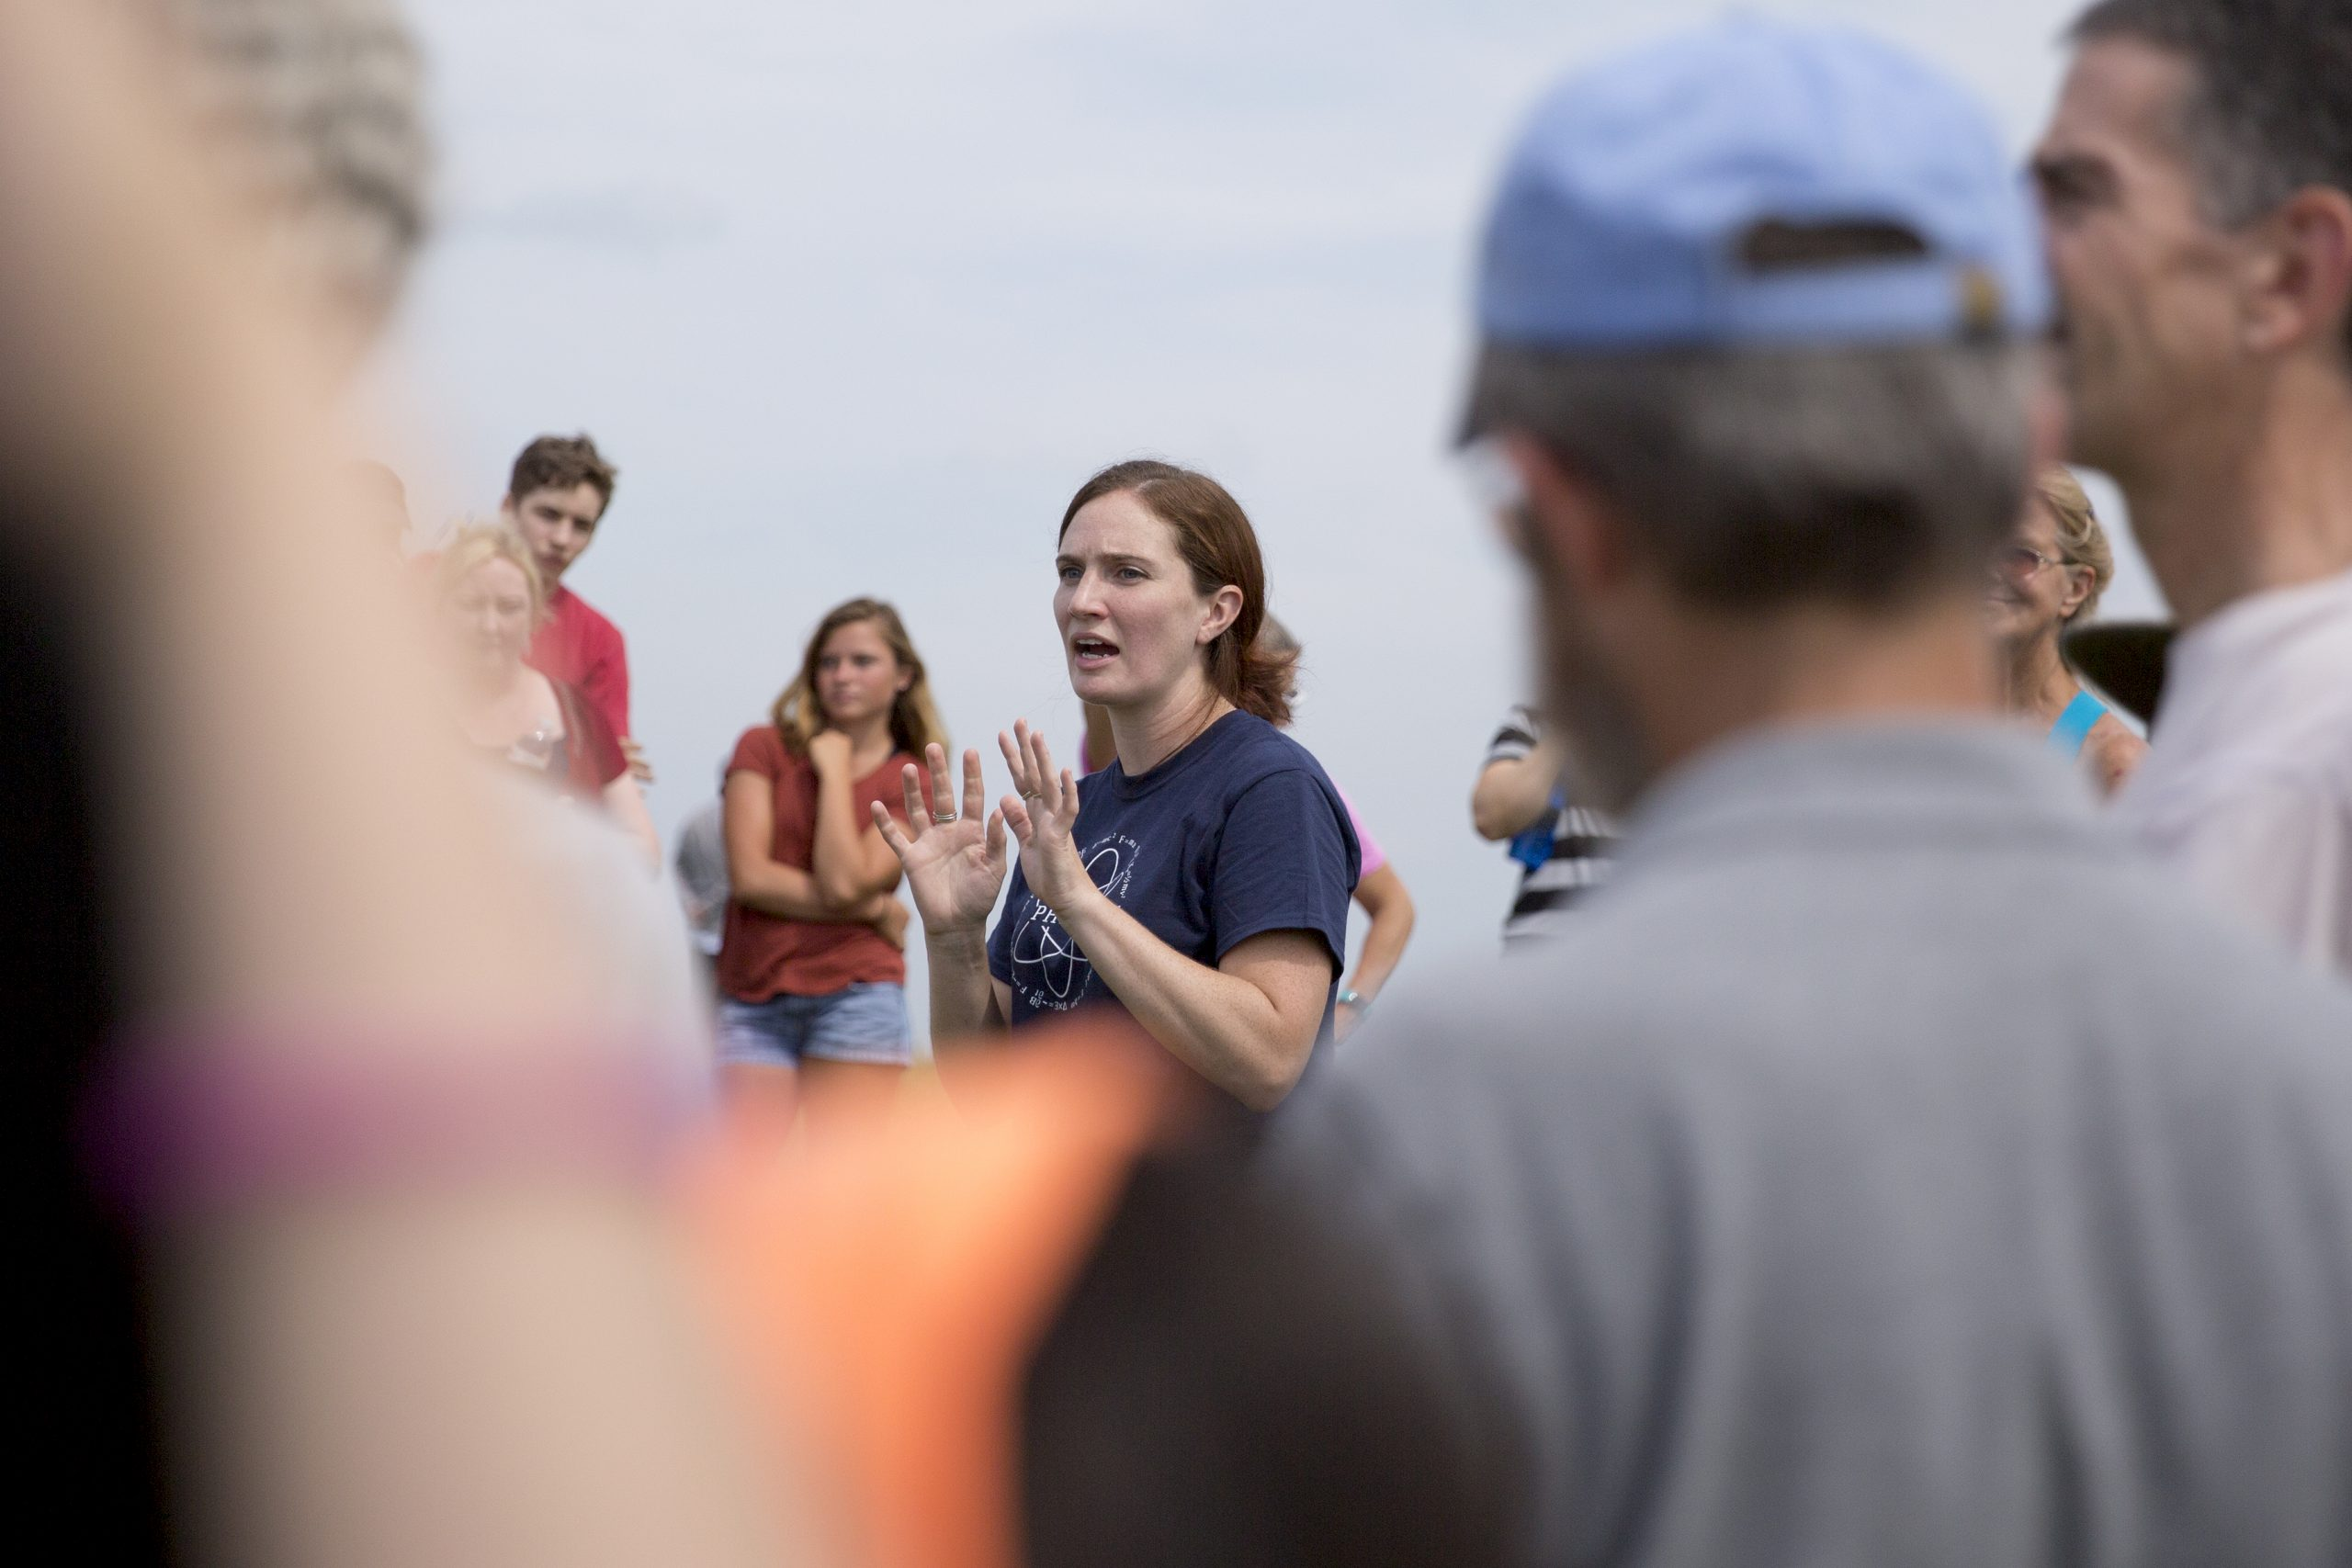 Associate Professor of Physics Cara Battersby talks to attendees at a solar eclipse viewing on Horsebarn Hill in 2017. Her work uses high-performance computing to understand astronomical questions